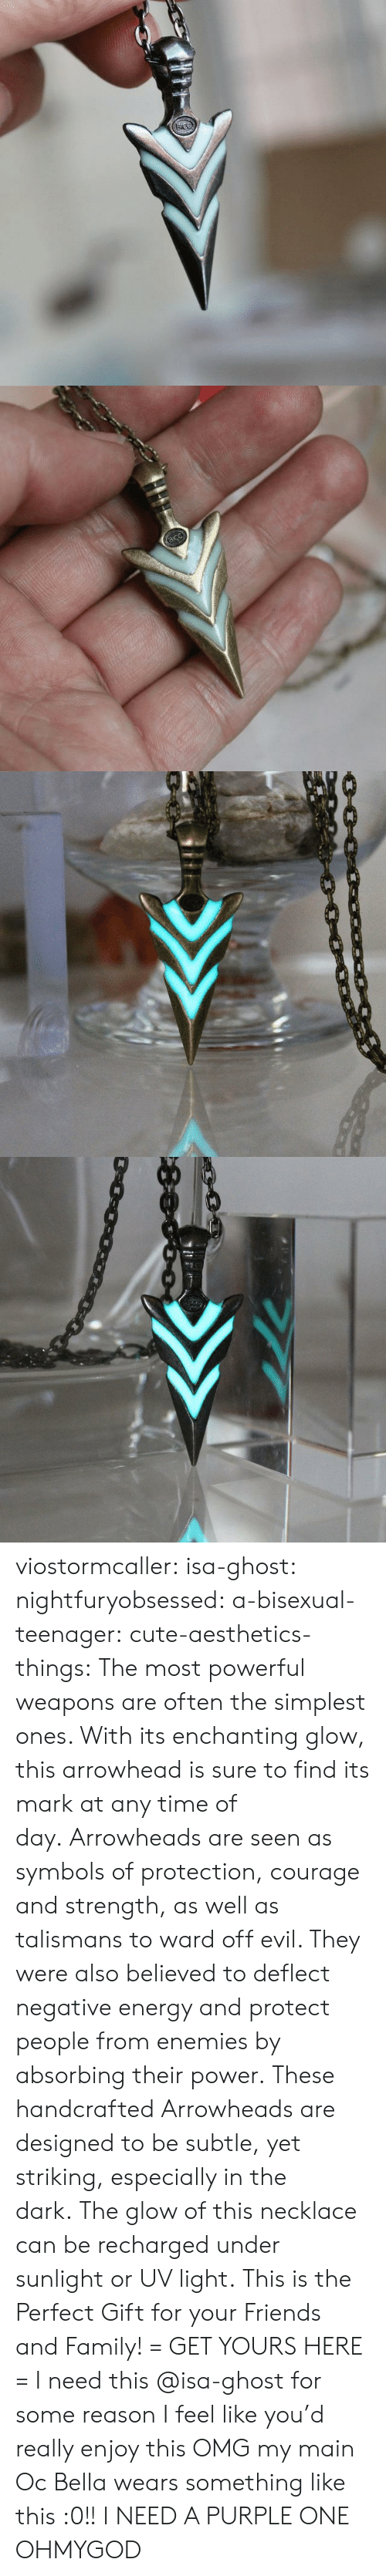 subtle: acc   0000c0 viostormcaller:  isa-ghost:  nightfuryobsessed: a-bisexual-teenager:  cute-aesthetics-things:  The most powerful weapons are often the simplest ones. With its enchanting glow, this arrowhead is sure to find its mark at any time of day. Arrowheads are seen as symbols of protection, courage and strength, as well as talismans to ward off evil. They were also believed to deflect negative energy and protect people from enemies by absorbing their power. These handcrafted Arrowheads are designed to be subtle, yet striking, especially in the dark. The glow of this necklace can be recharged under sunlight or UV light. This is the Perfect Gift for your Friends and Family! = GET YOURS HERE =   I need this  @isa-ghost for some reason I feel like you'd really enjoy this  OMG my main Oc Bella wears something like this :0!!  I NEED A PURPLE ONE OHMYGOD